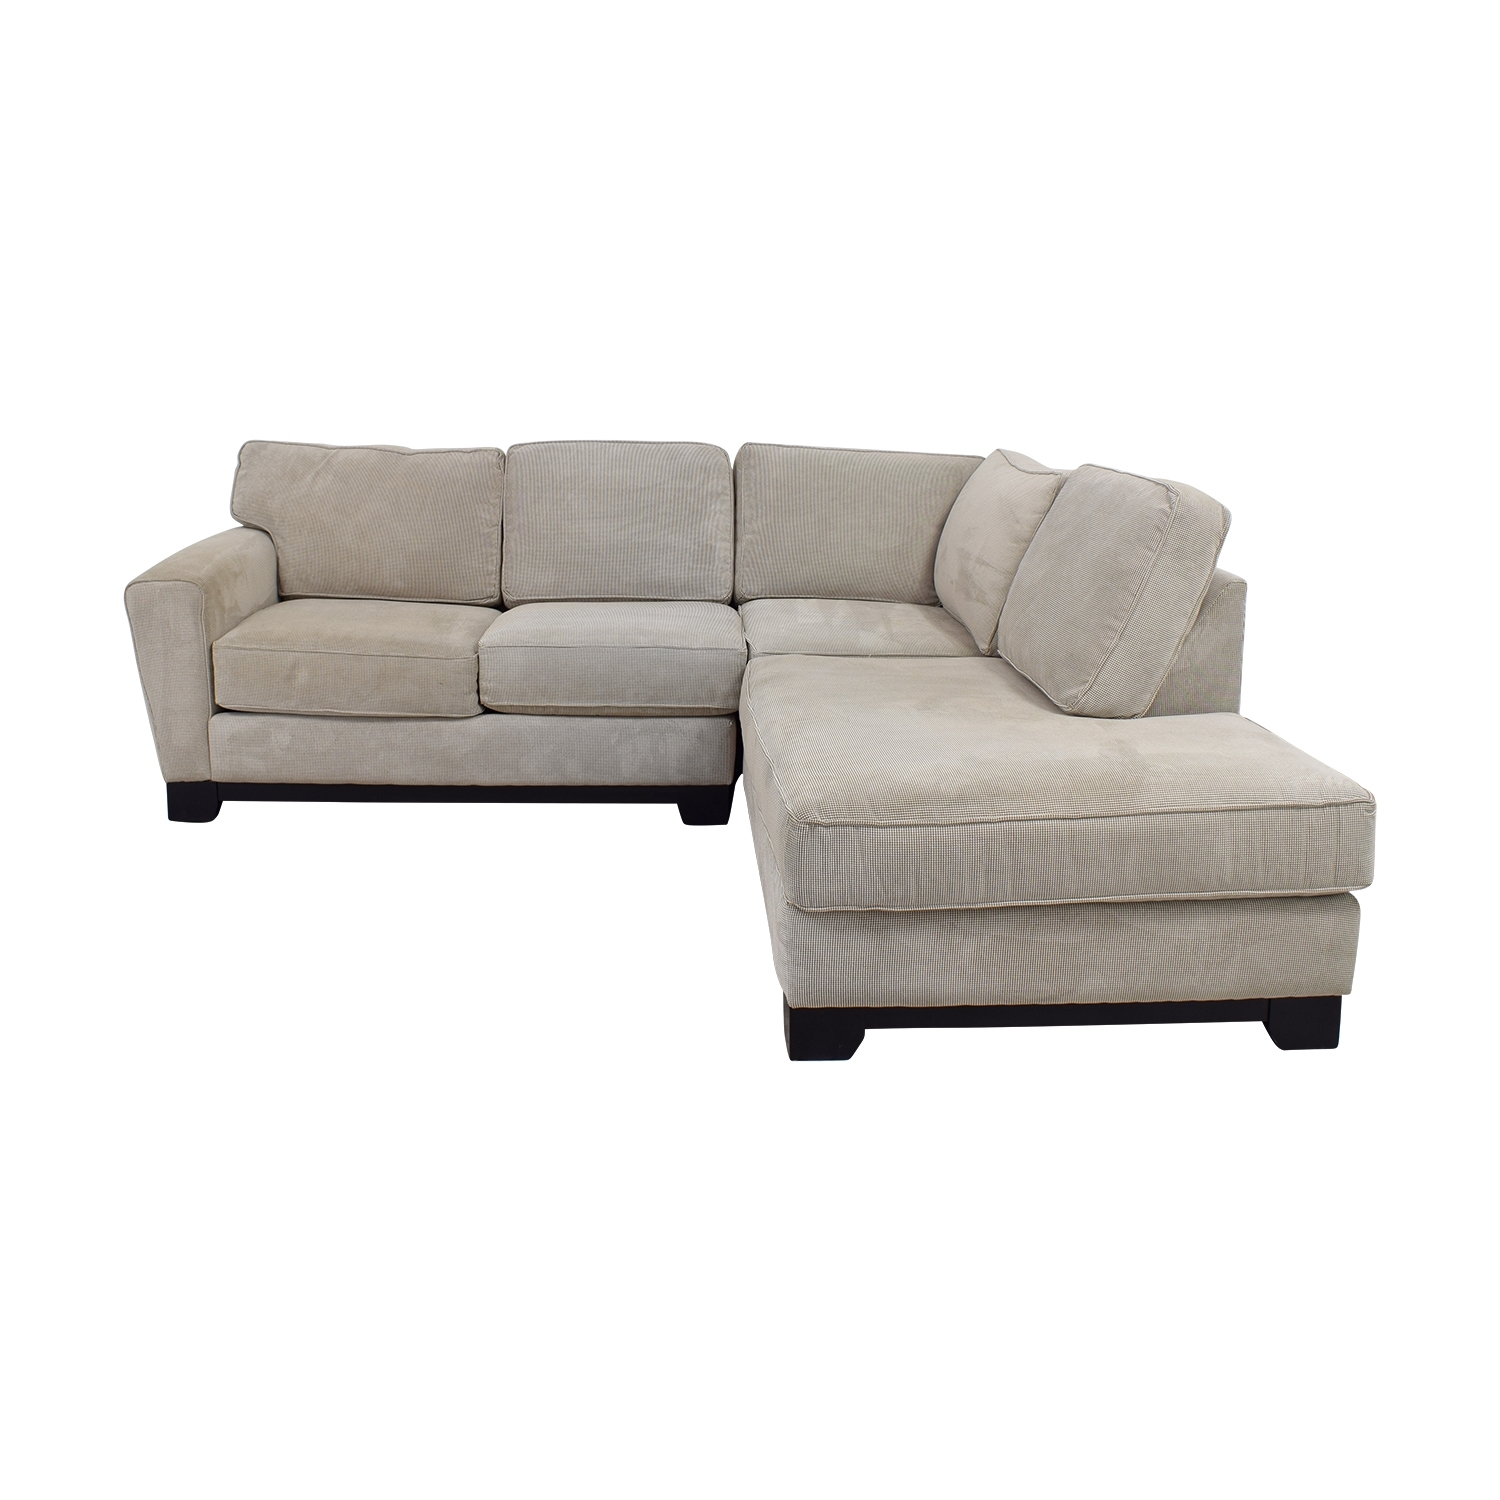 83% Off   Jordan's Furniture Jordan's Furniture Beige L Shaped Throughout Jordans Sectional Sofas (Photo 2 of 10)